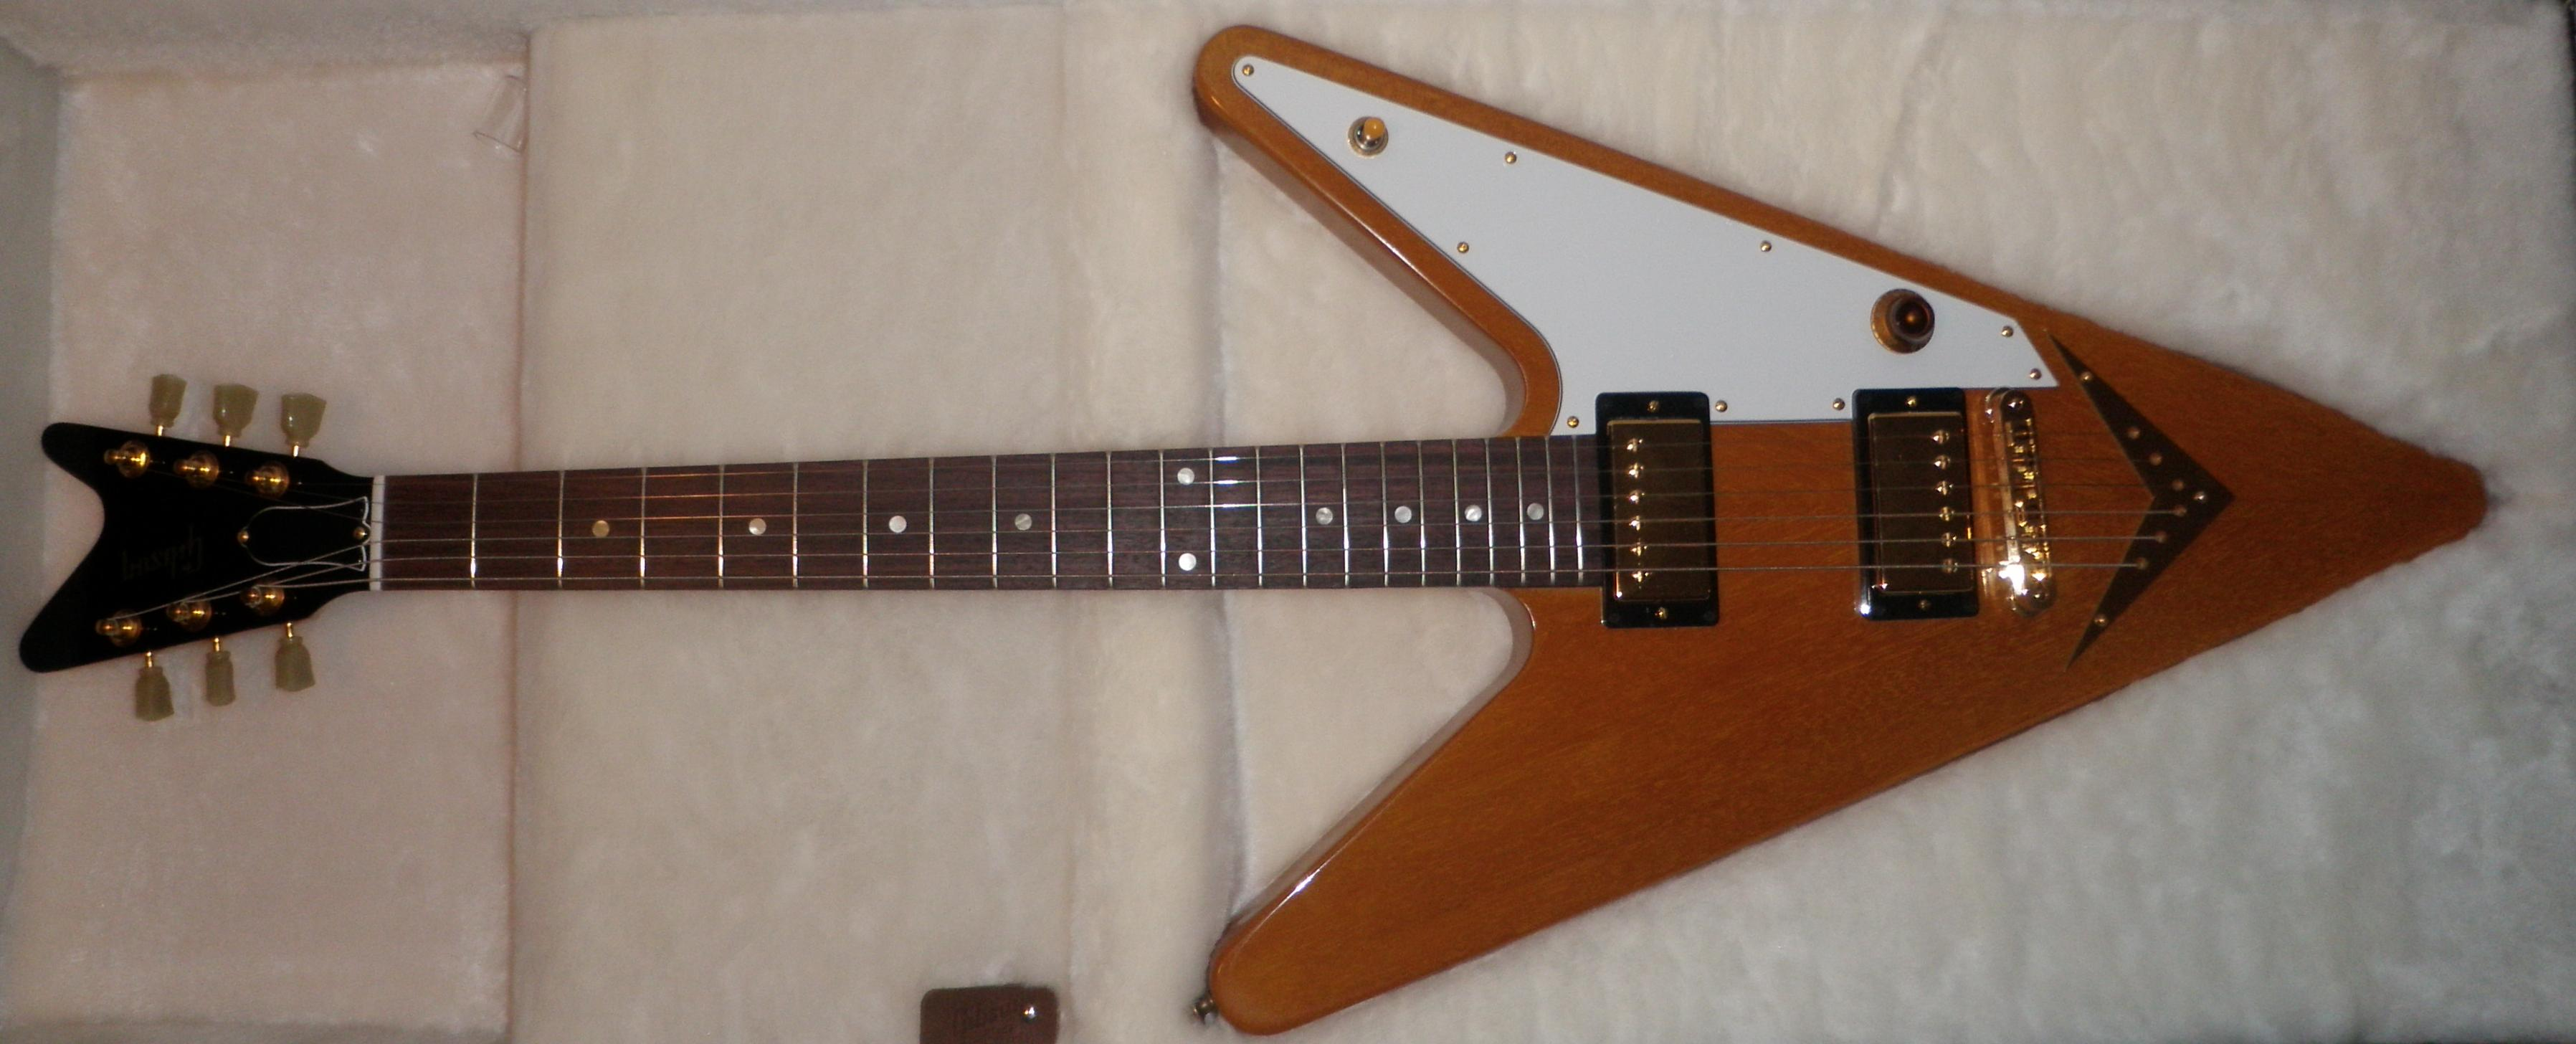 gibson flying v wikiwand